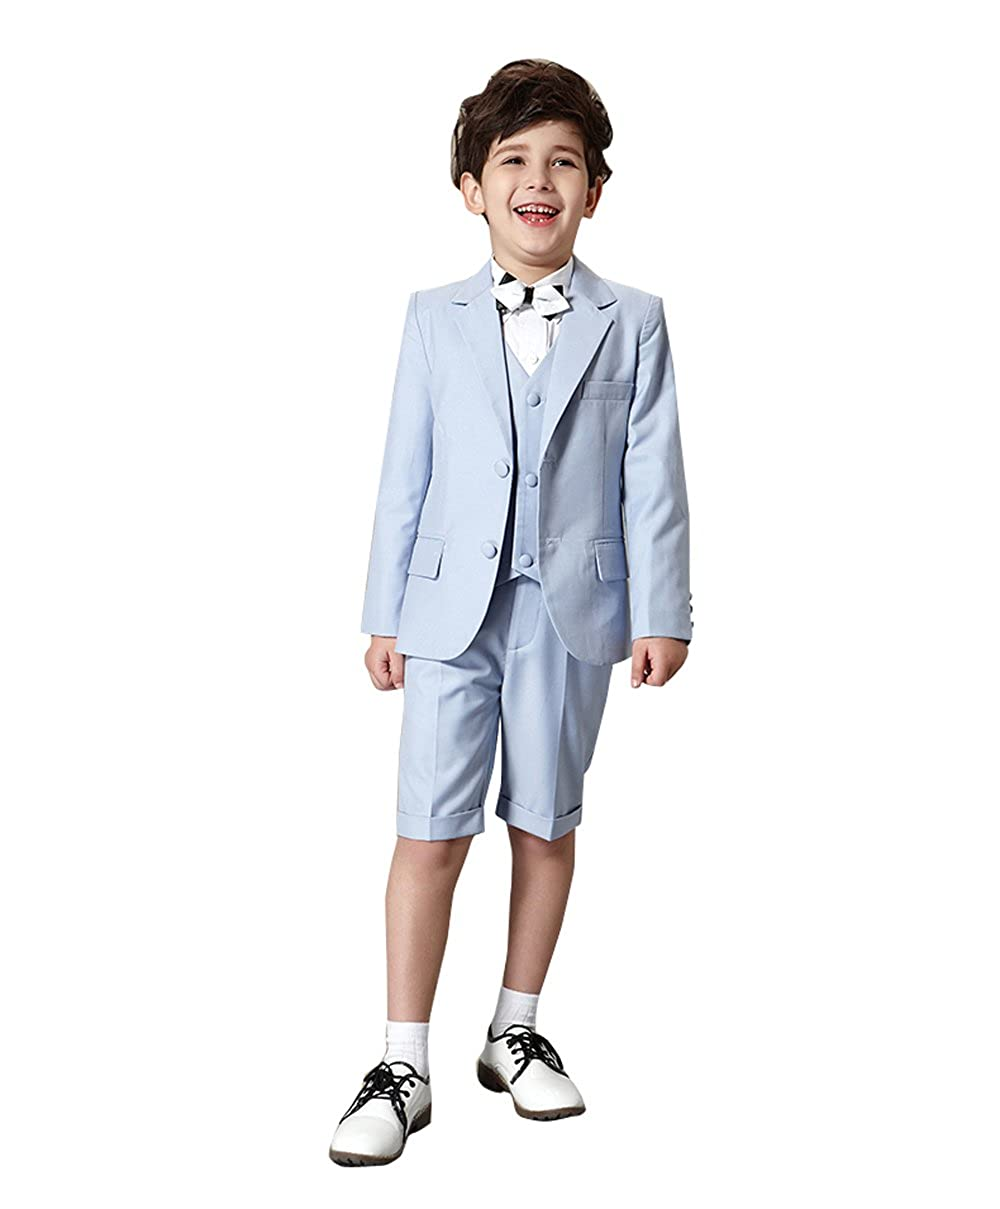 Kelaixiang Boys 3pcs Slim Fit Suits Two Button Suits for Kids Formal Ceremony Wedding Party Tuxedos